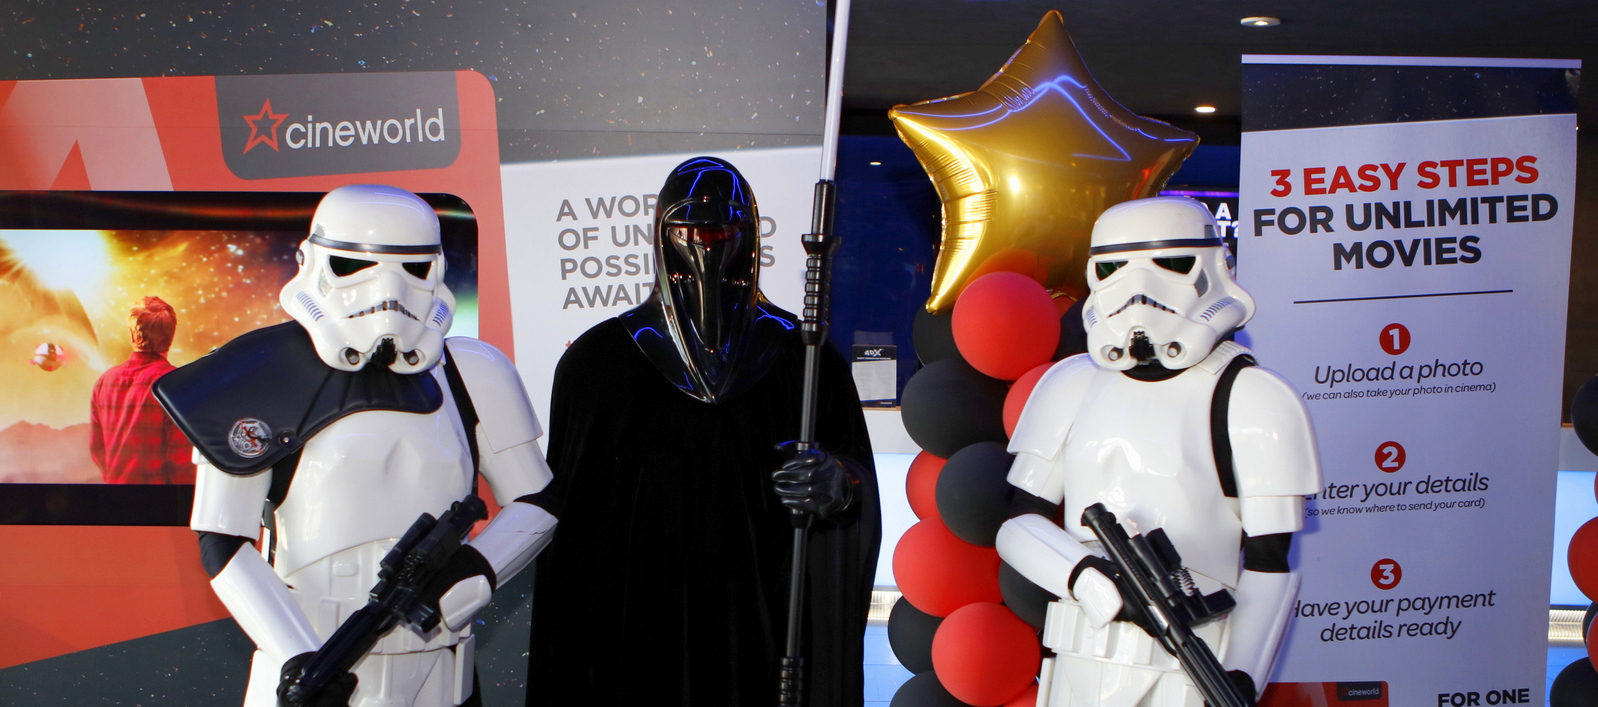 Aspergers, autism, Autism All Stars, autism awareness, characters, charity, cinema, Cineworld, cosplay, diversity, events, sussex, crawley, west sussex, Star Wars, Skywalker,